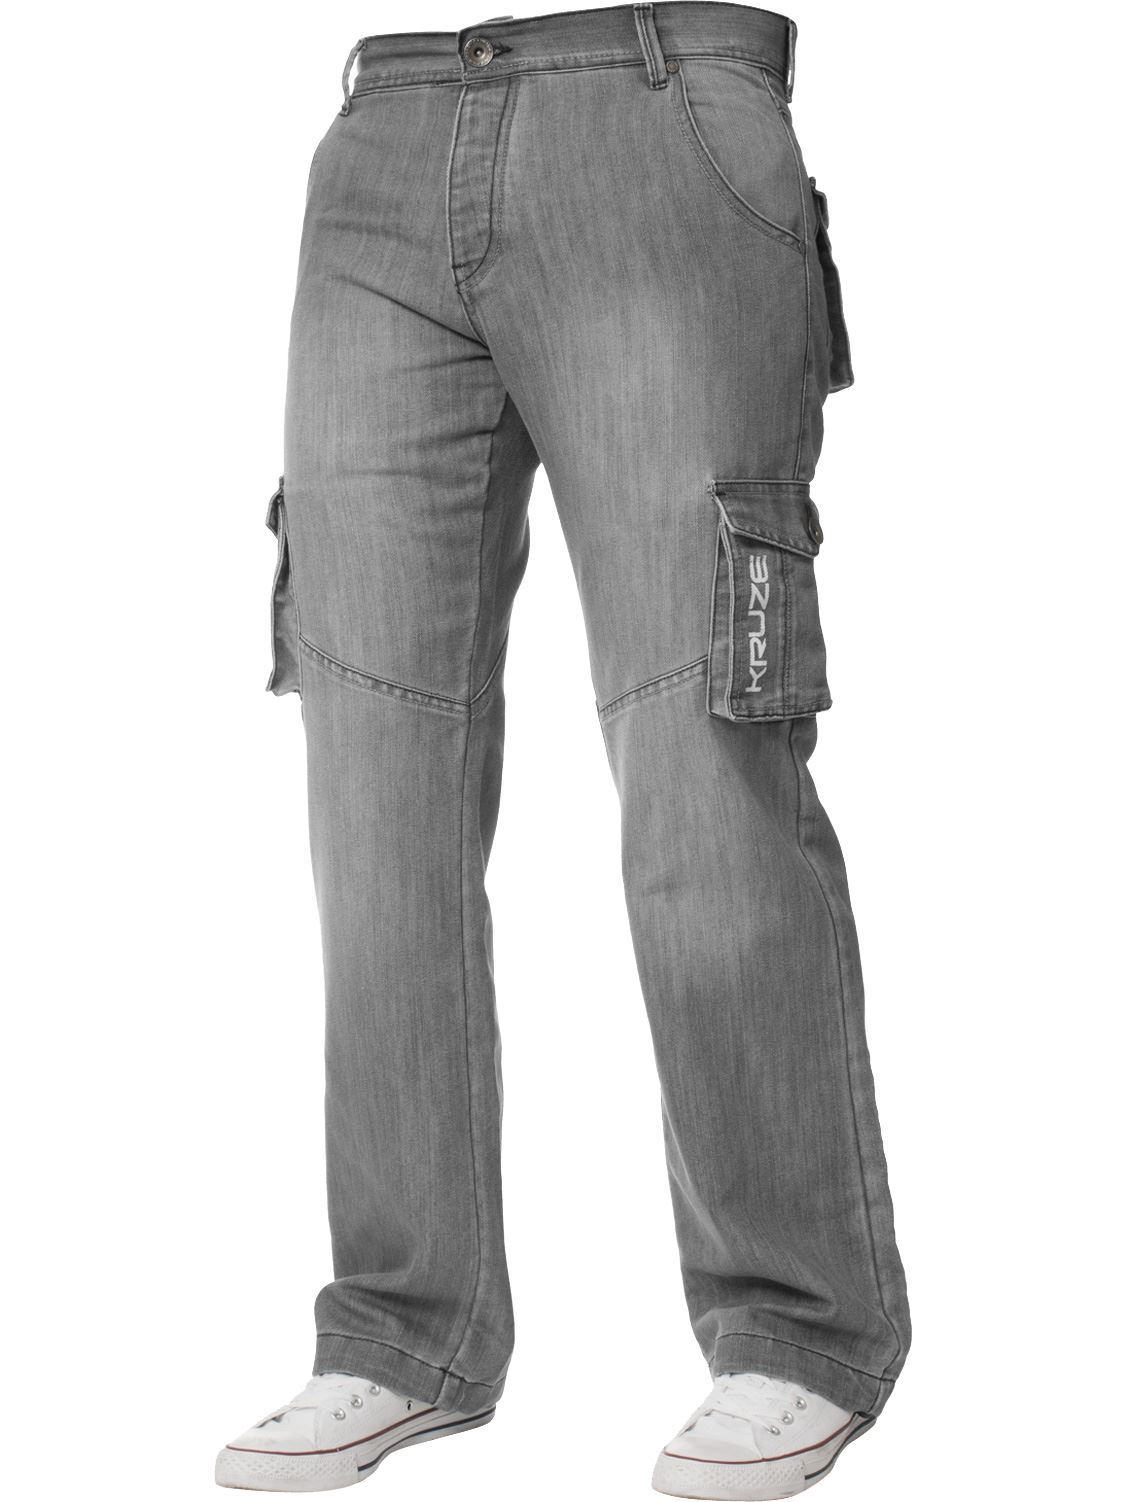 KRUZE-Mens-Combat-Jeans-Casual-Cargo-Work-Pants-Denim-Trousers-All-Waist-Sizes thumbnail 30